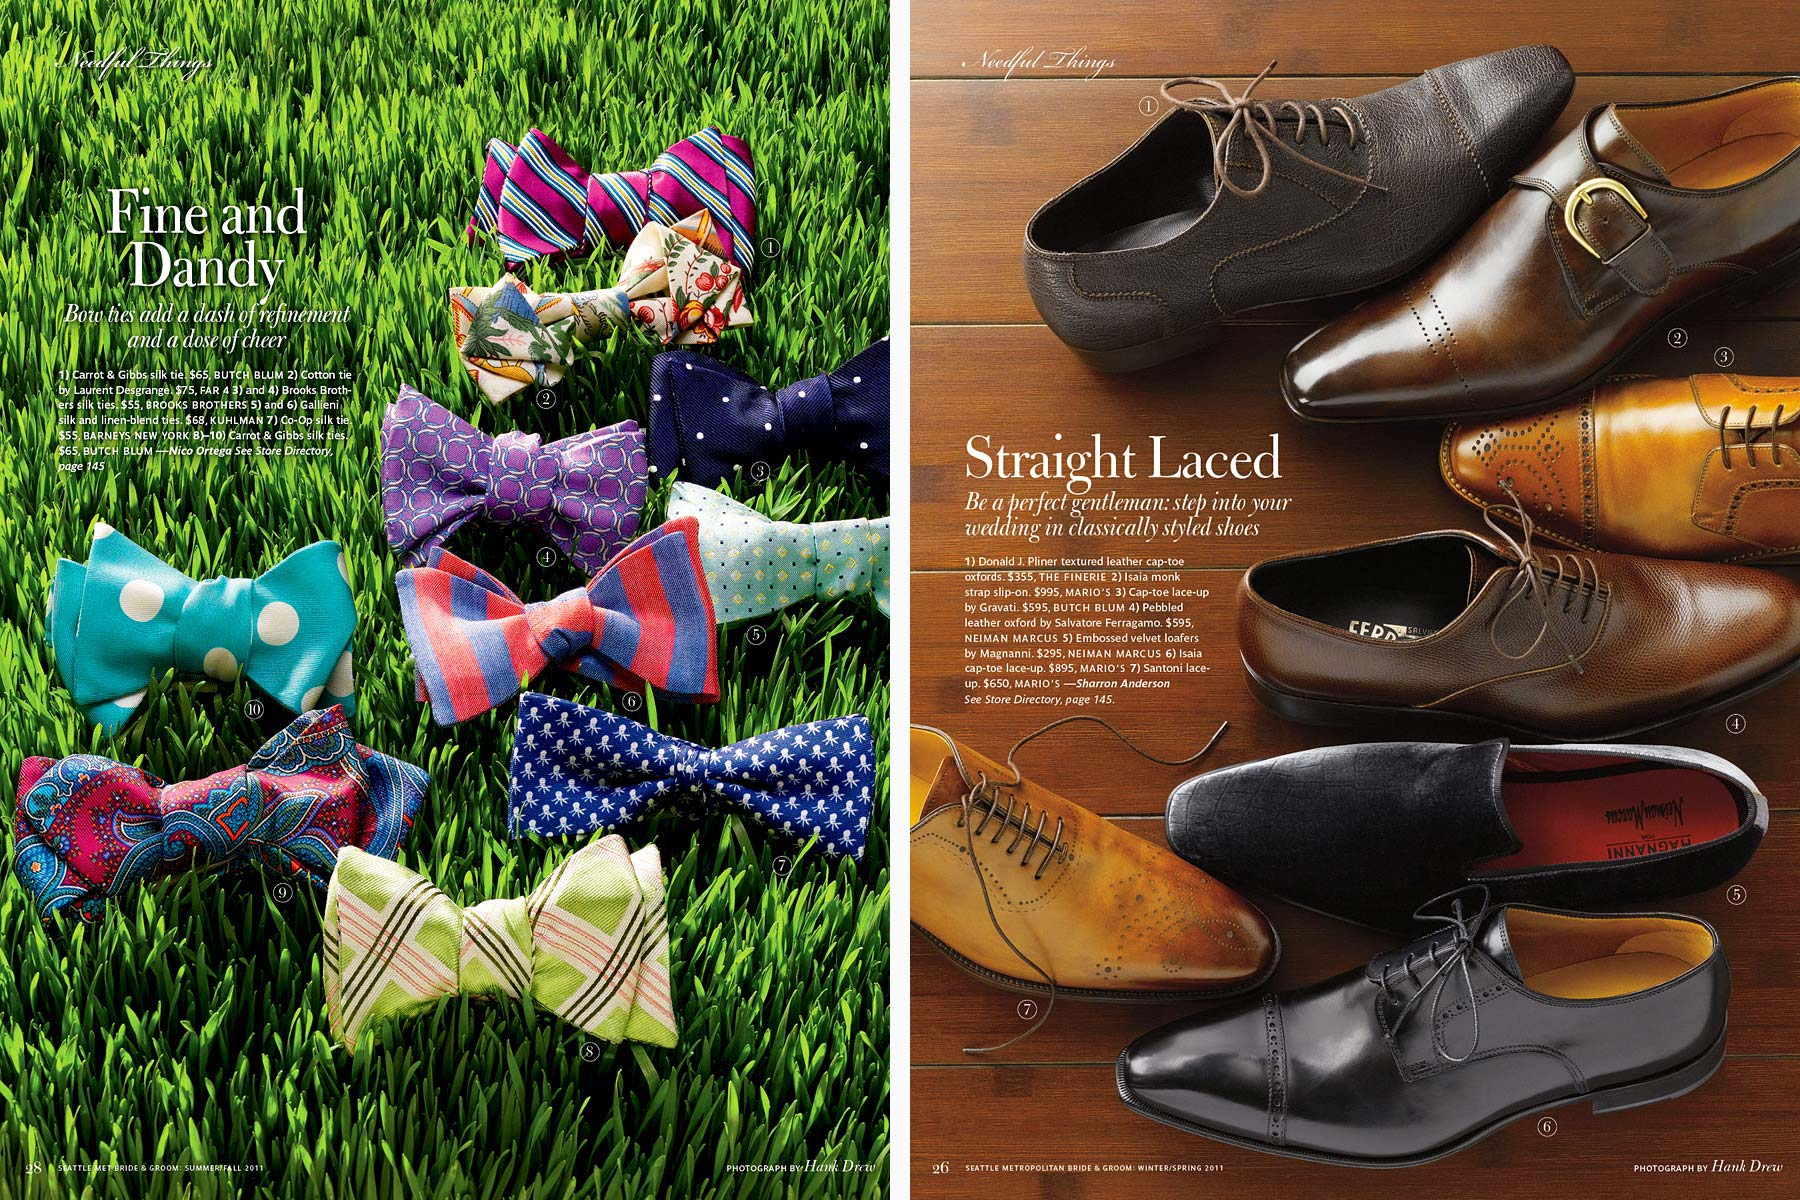 BowTiesShoes